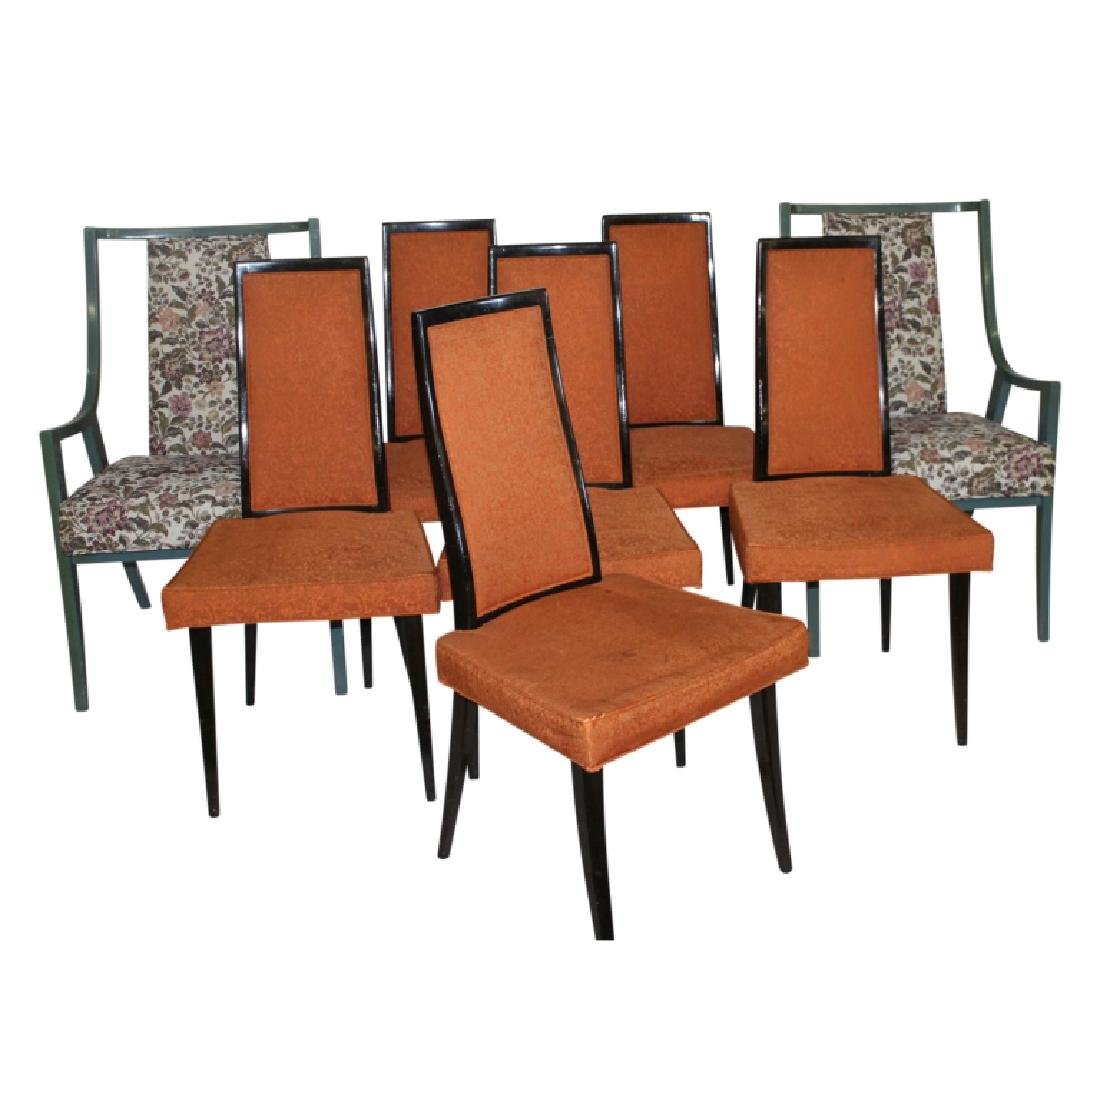 Harvey Probber Dining Room Chairs - 8PCS